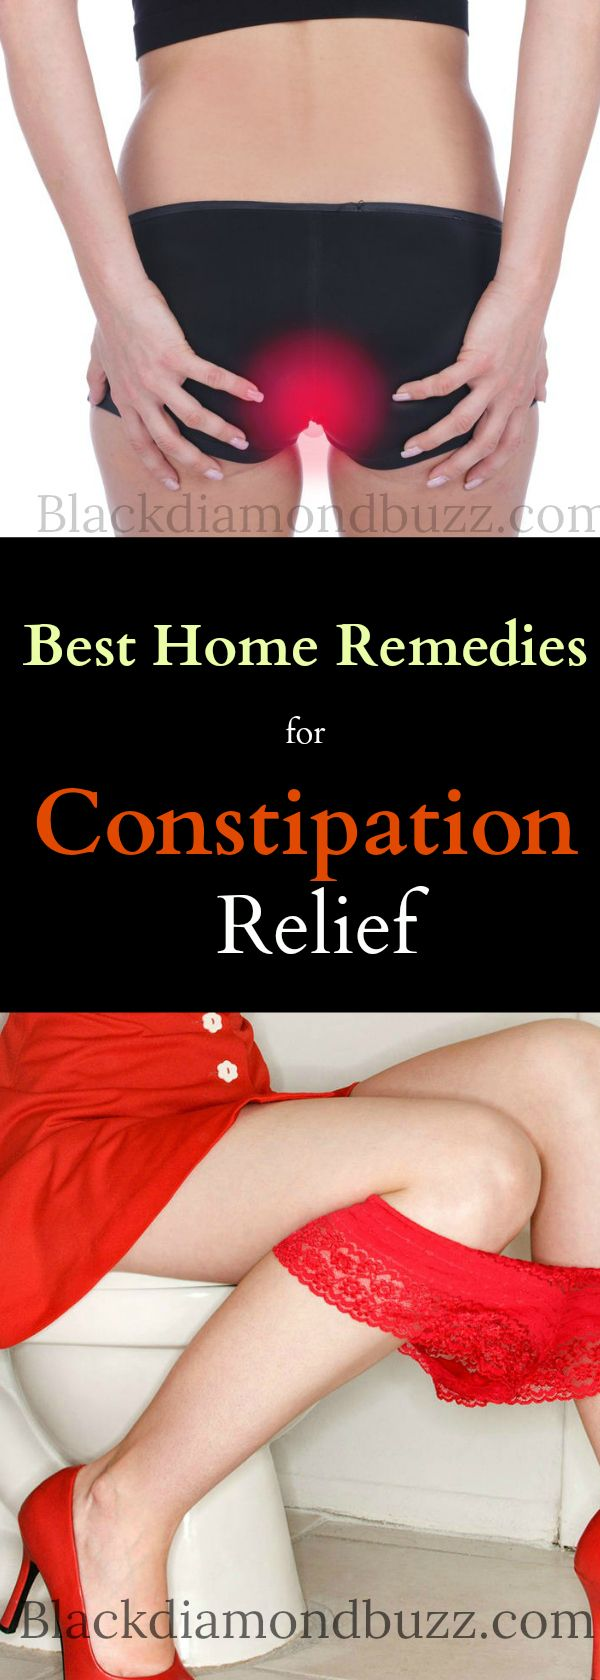 best home remedies for constipation relief 1